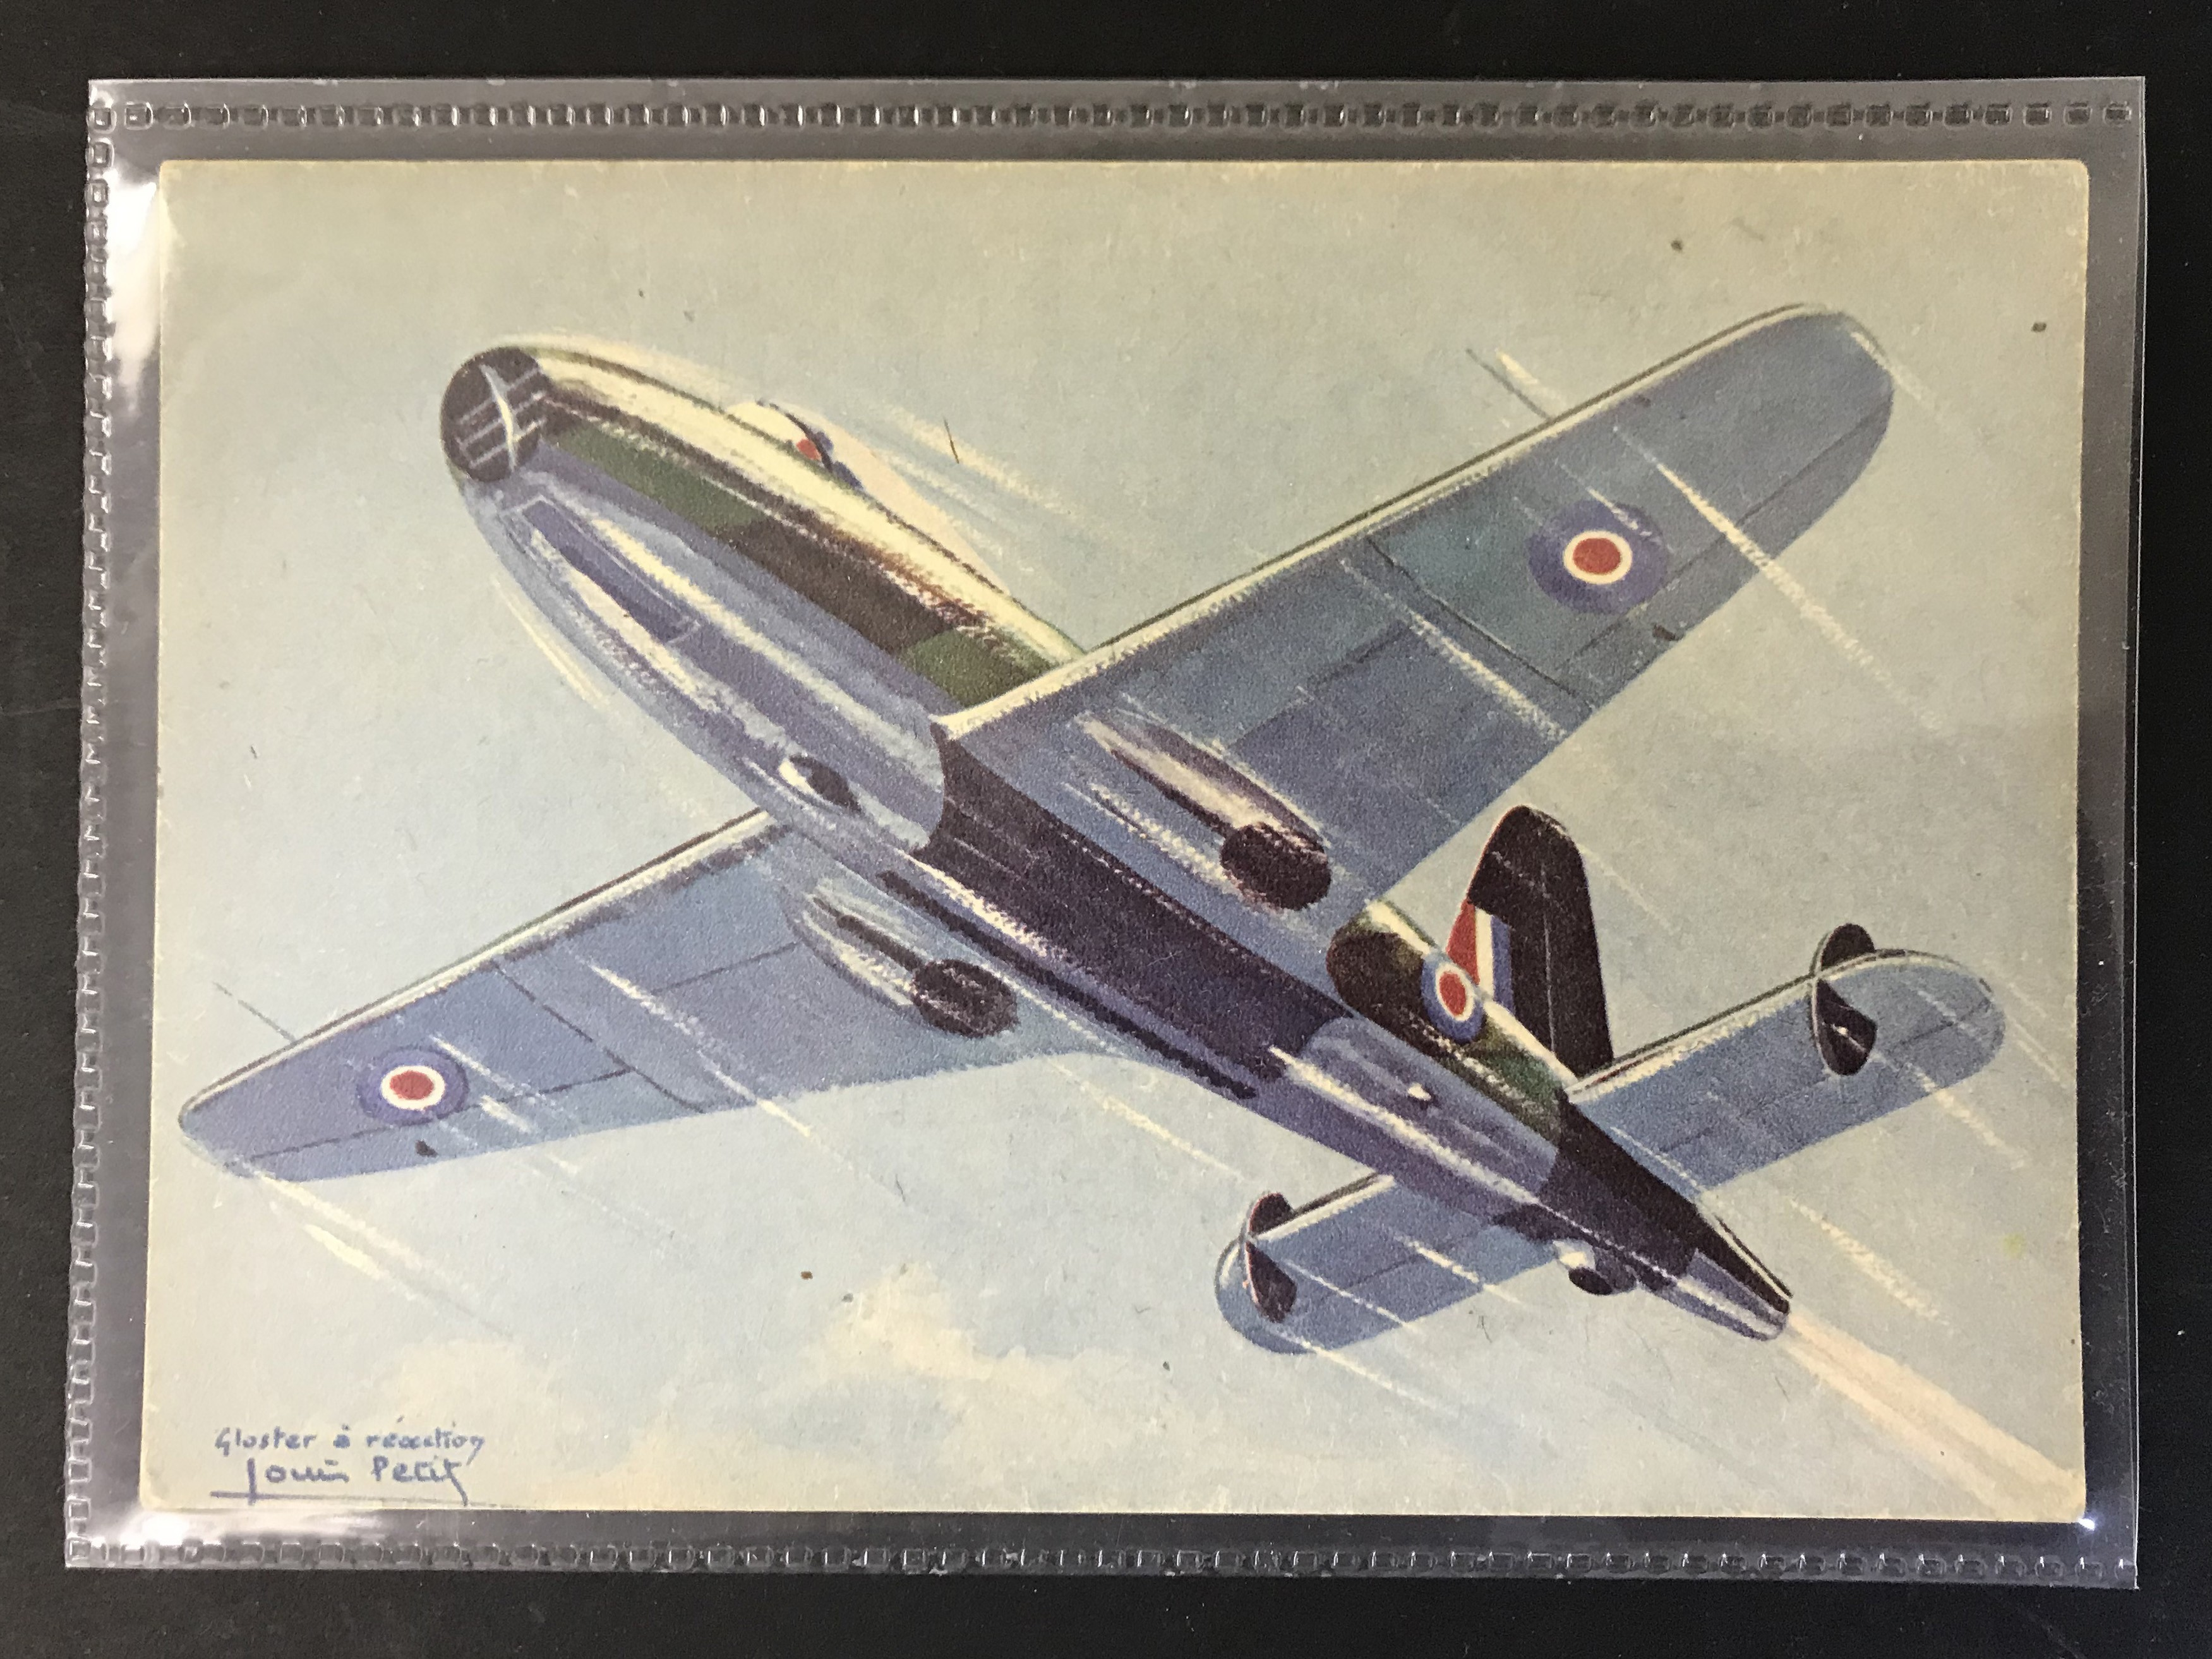 GROUP OF TWELVE FRENCH PLANES RELATED POSTCARDS - VARIOUS SERIES - Image 5 of 14